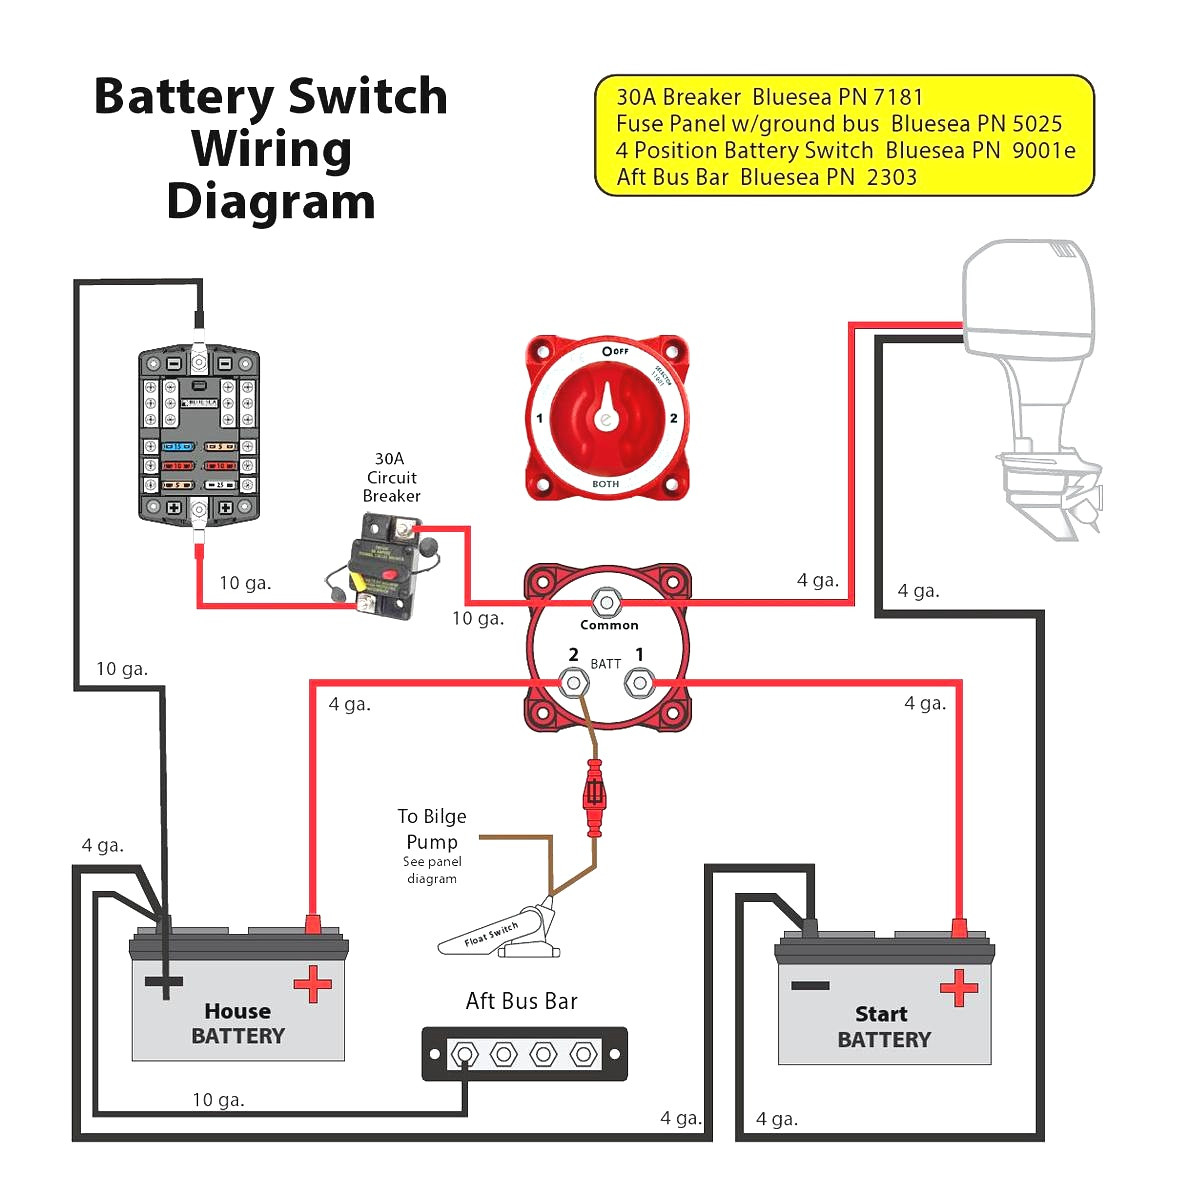 Battery Wire Diagrams | Wiring Diagram - Dual Battery Switch Wiring Diagram